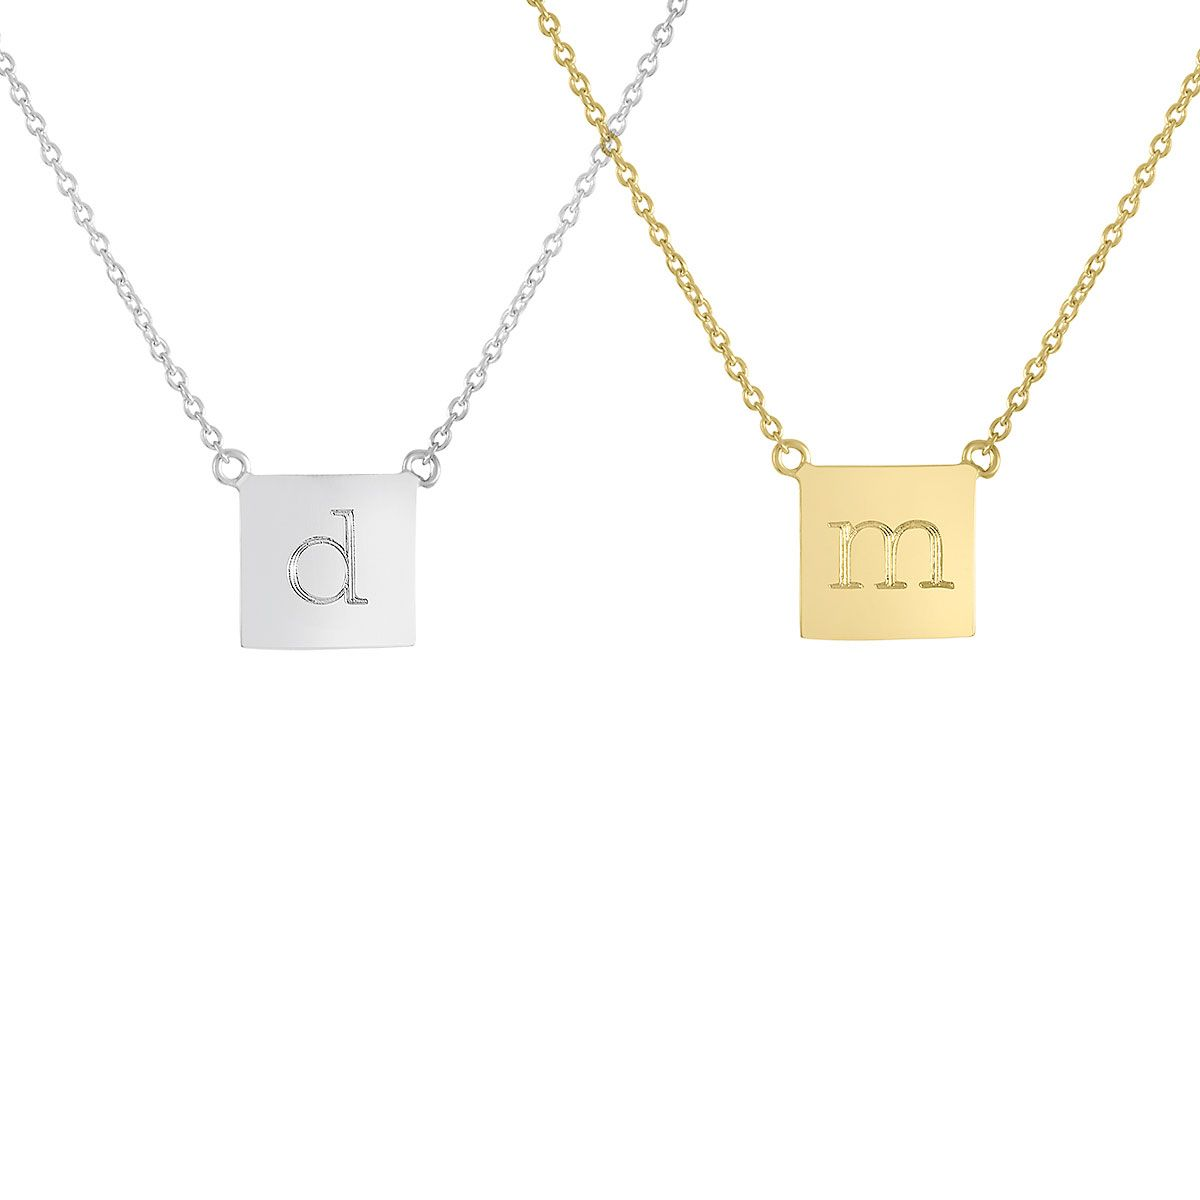 Personalized Chloe Square Necklace